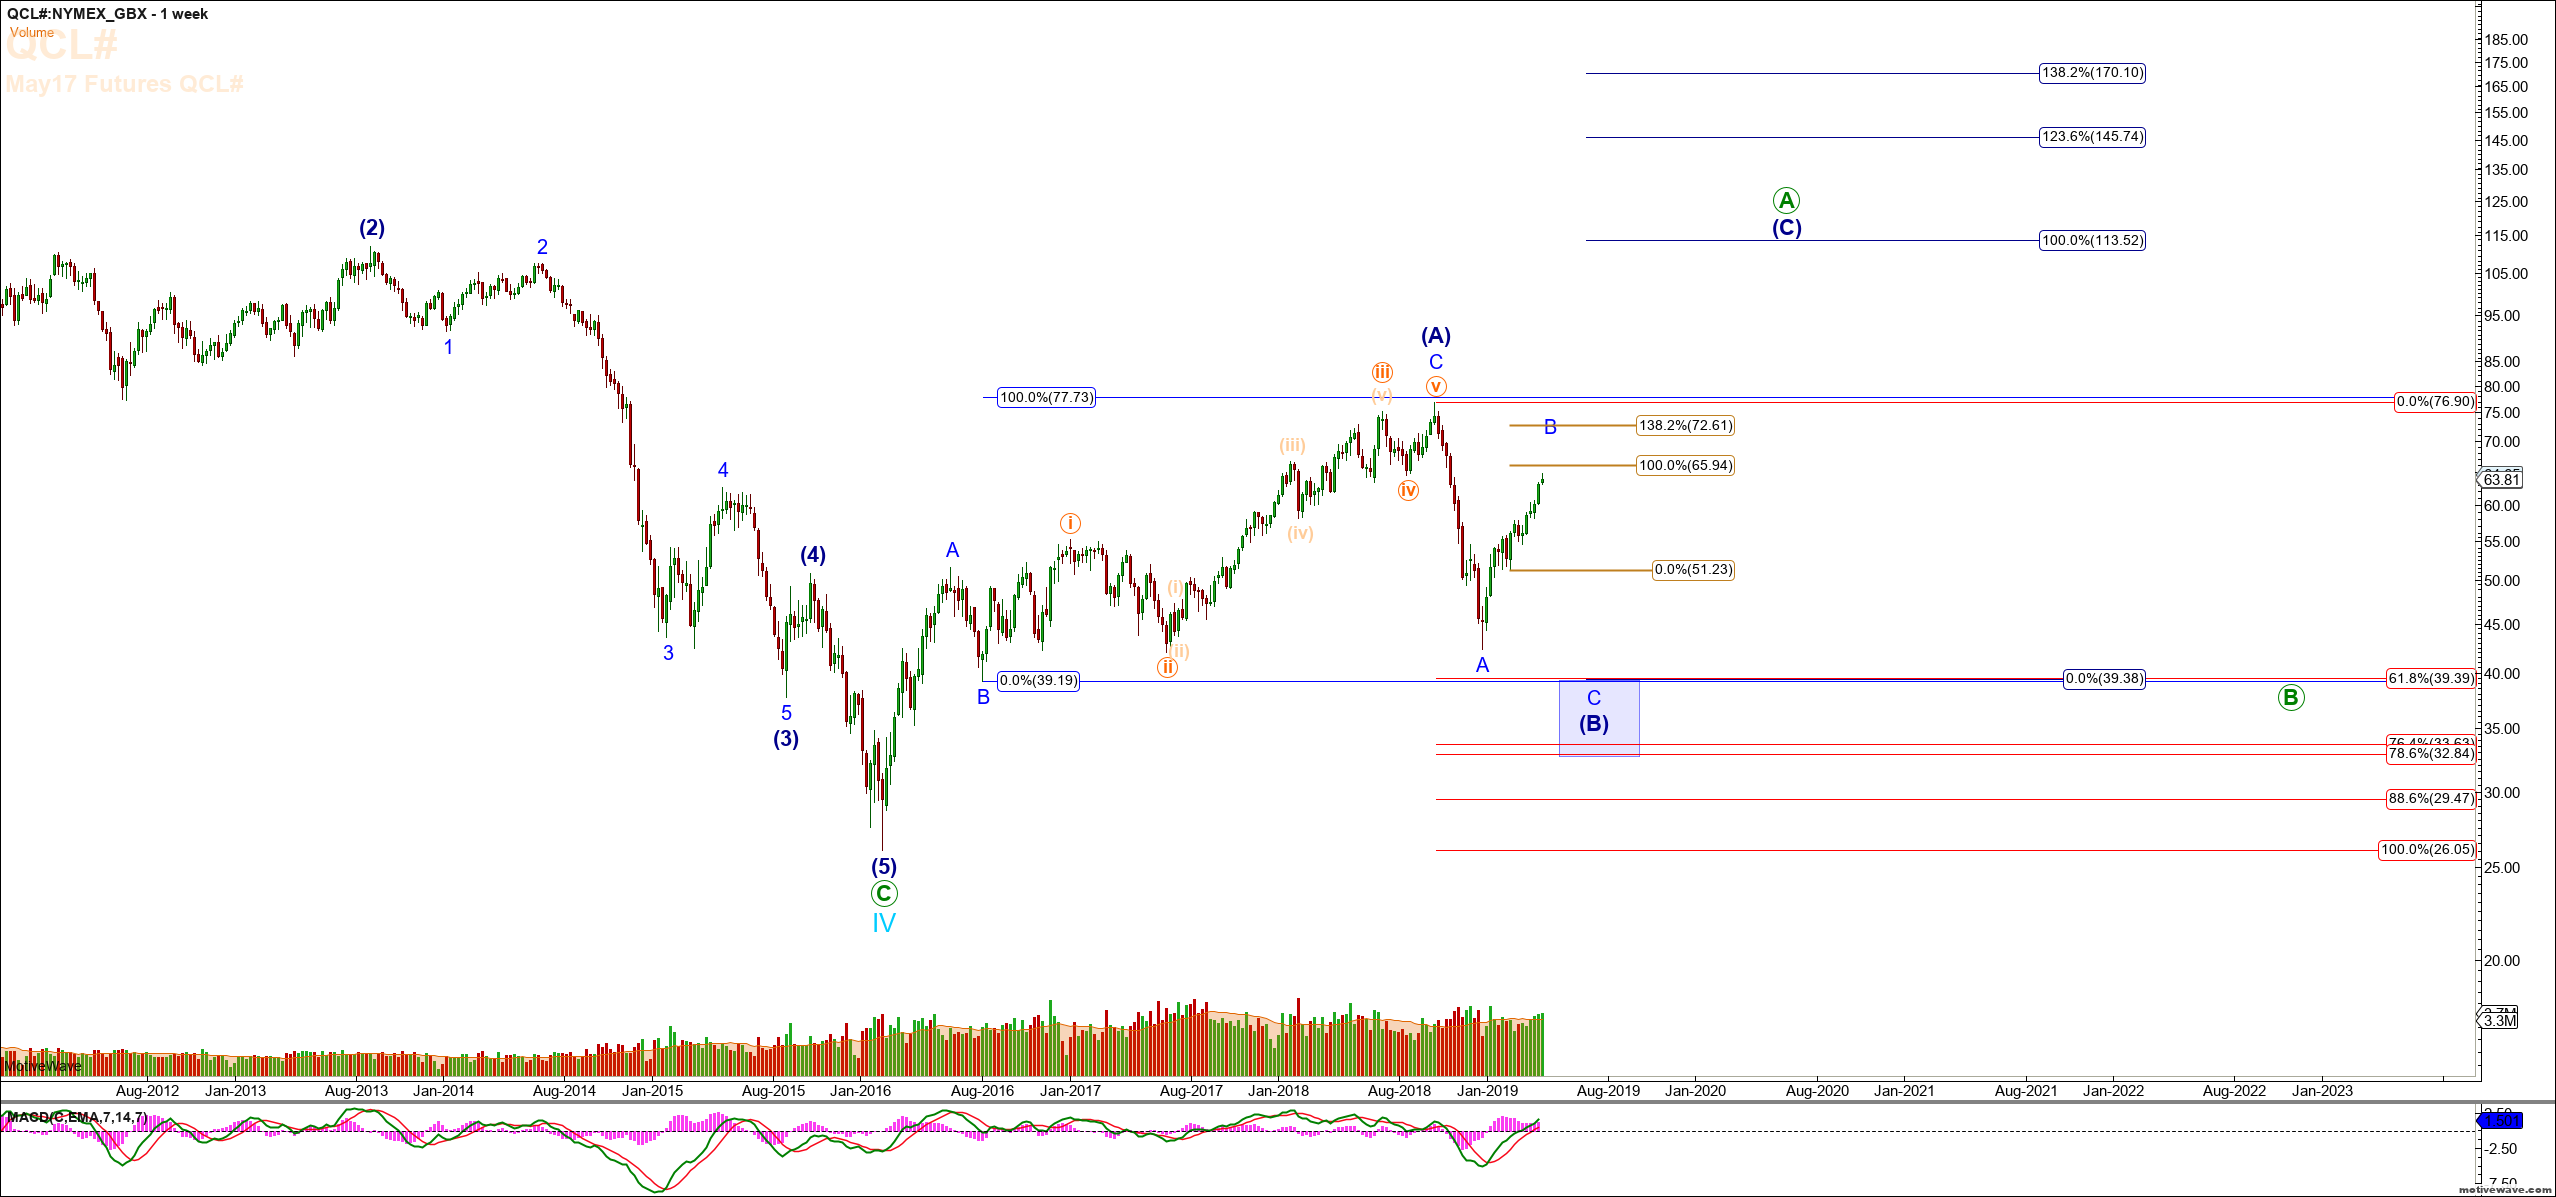 Crude Oil: Expecting A Move To $69-$72 Before Huge Downside